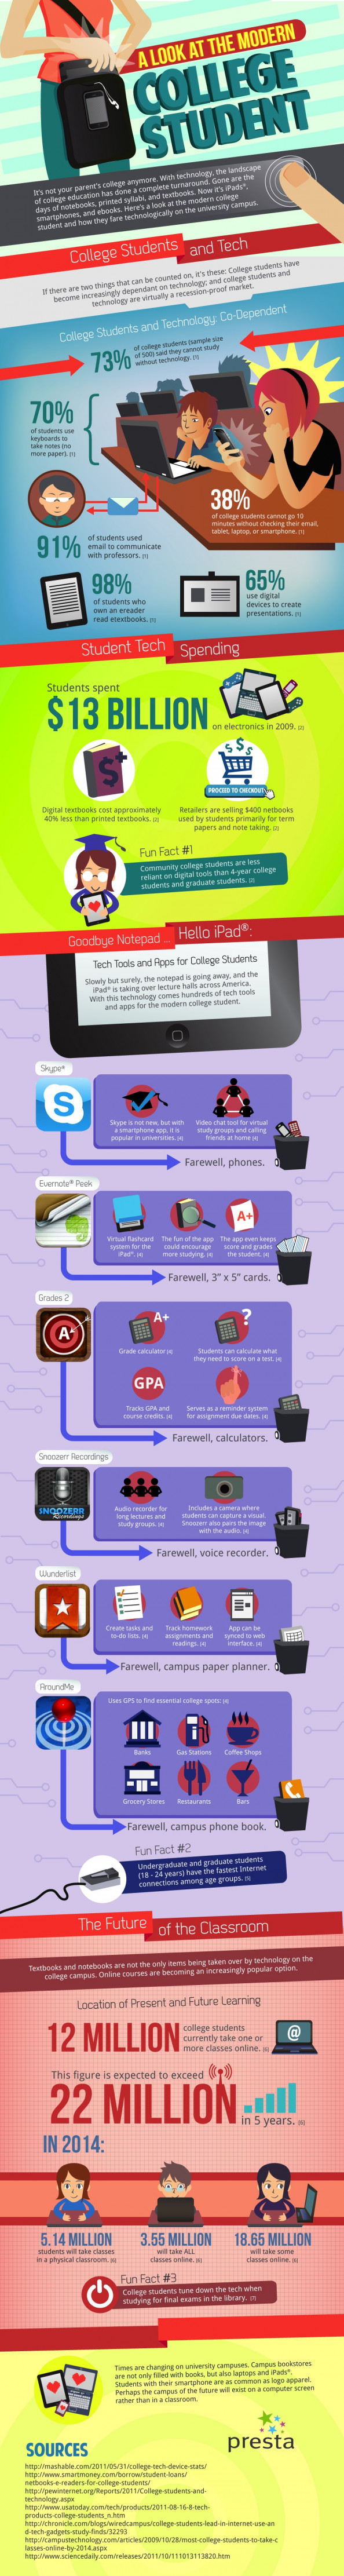 How Tech Is Changing College Life Infographic